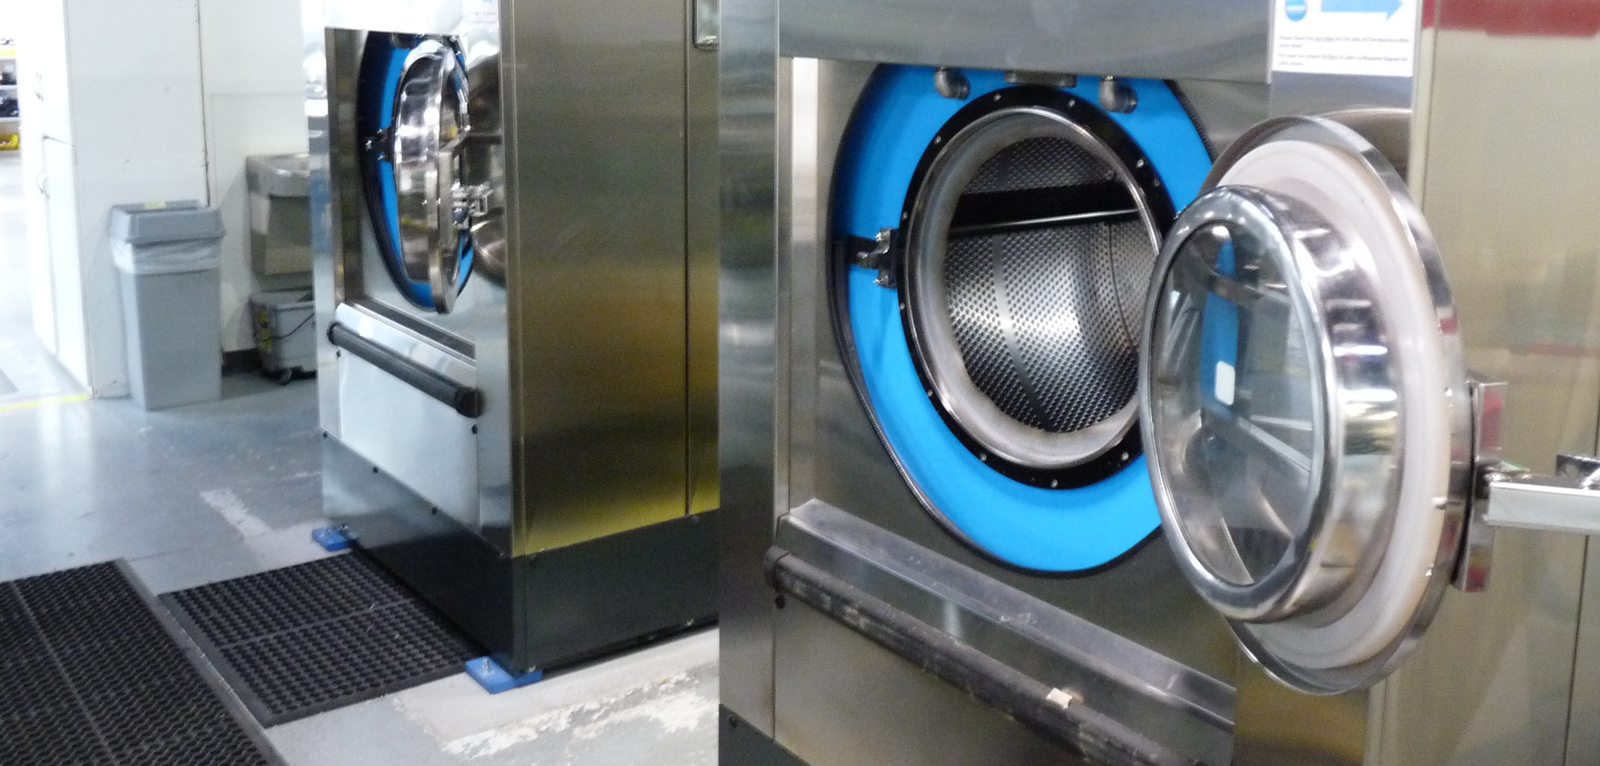 6 Ways to Leverage Technology in Your Commercial Laundry Business